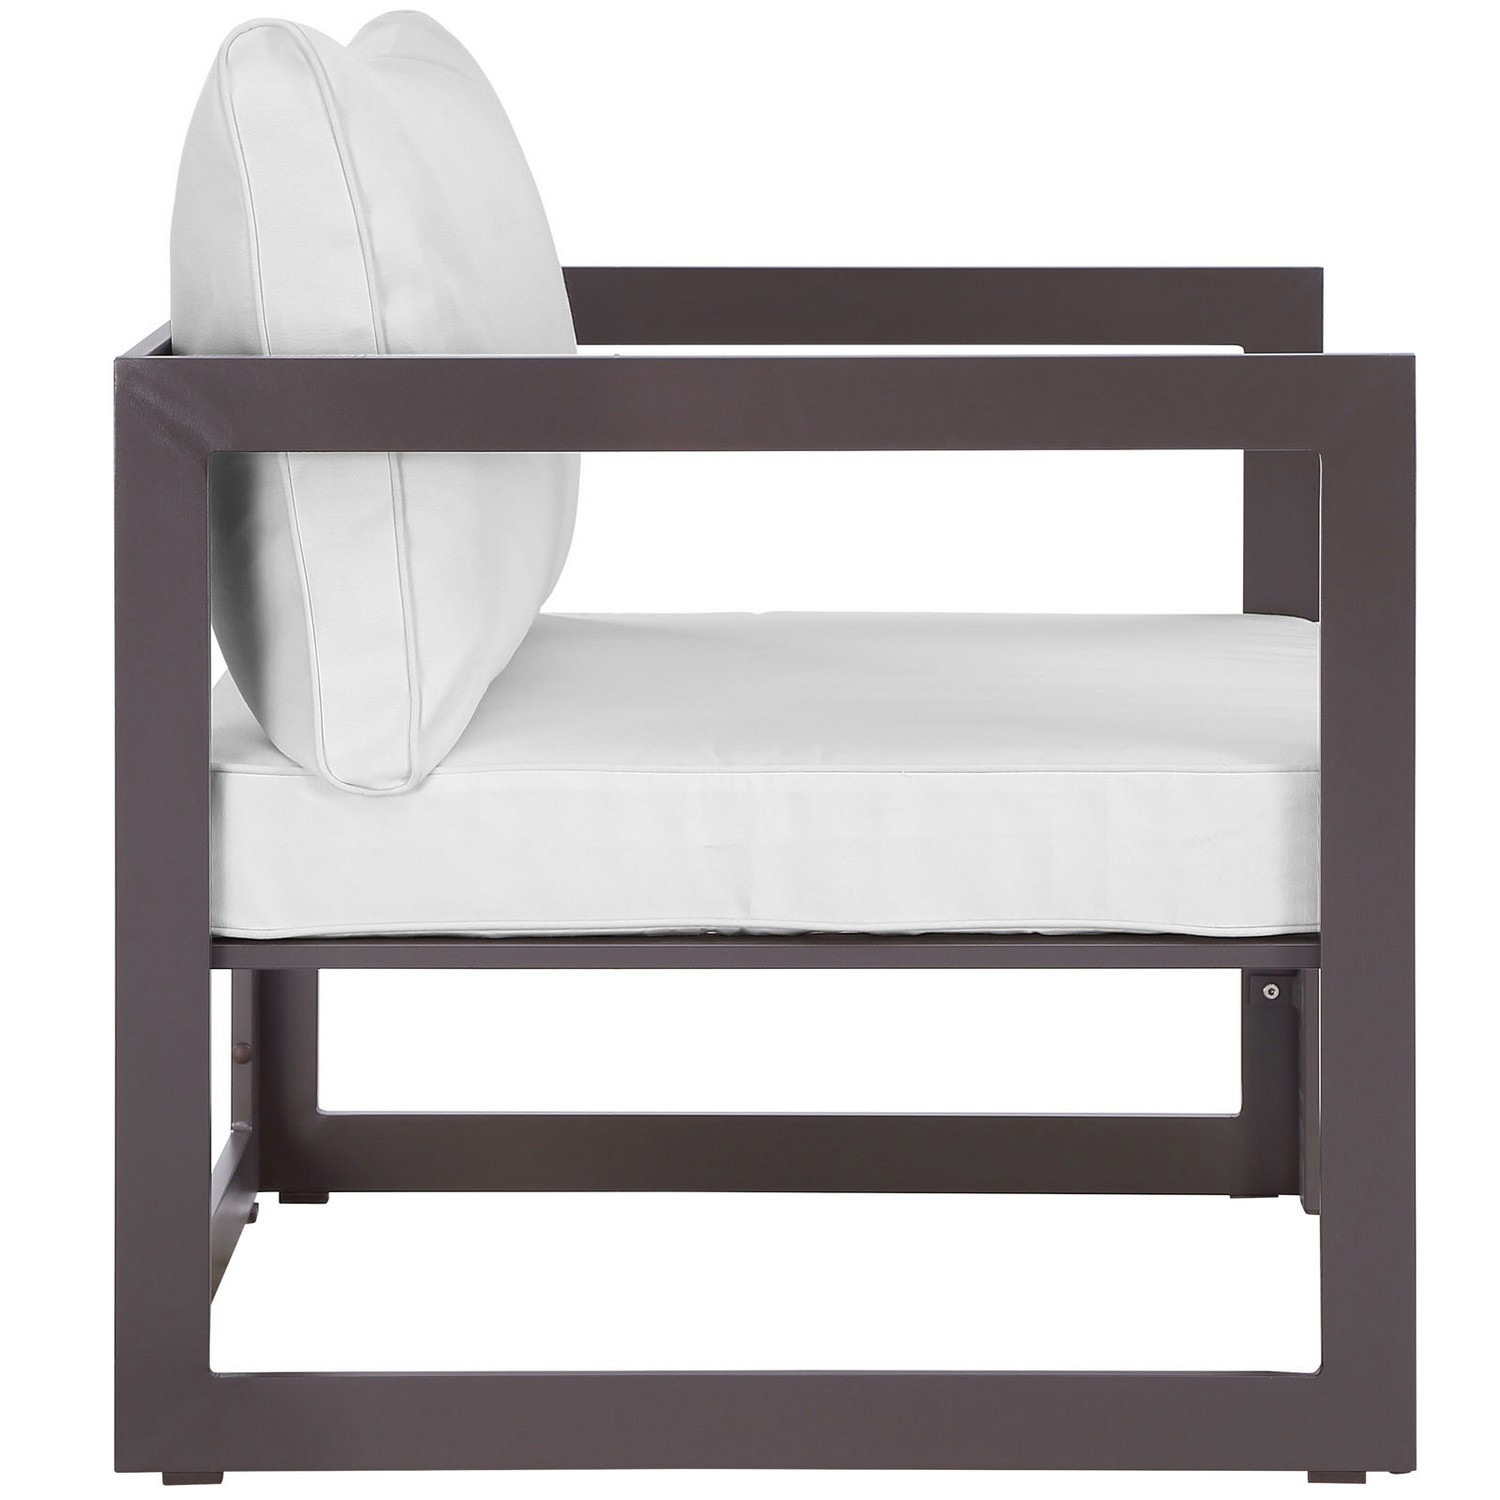 Modway Fortuna Outdoor Patio Armchair - Brown/White